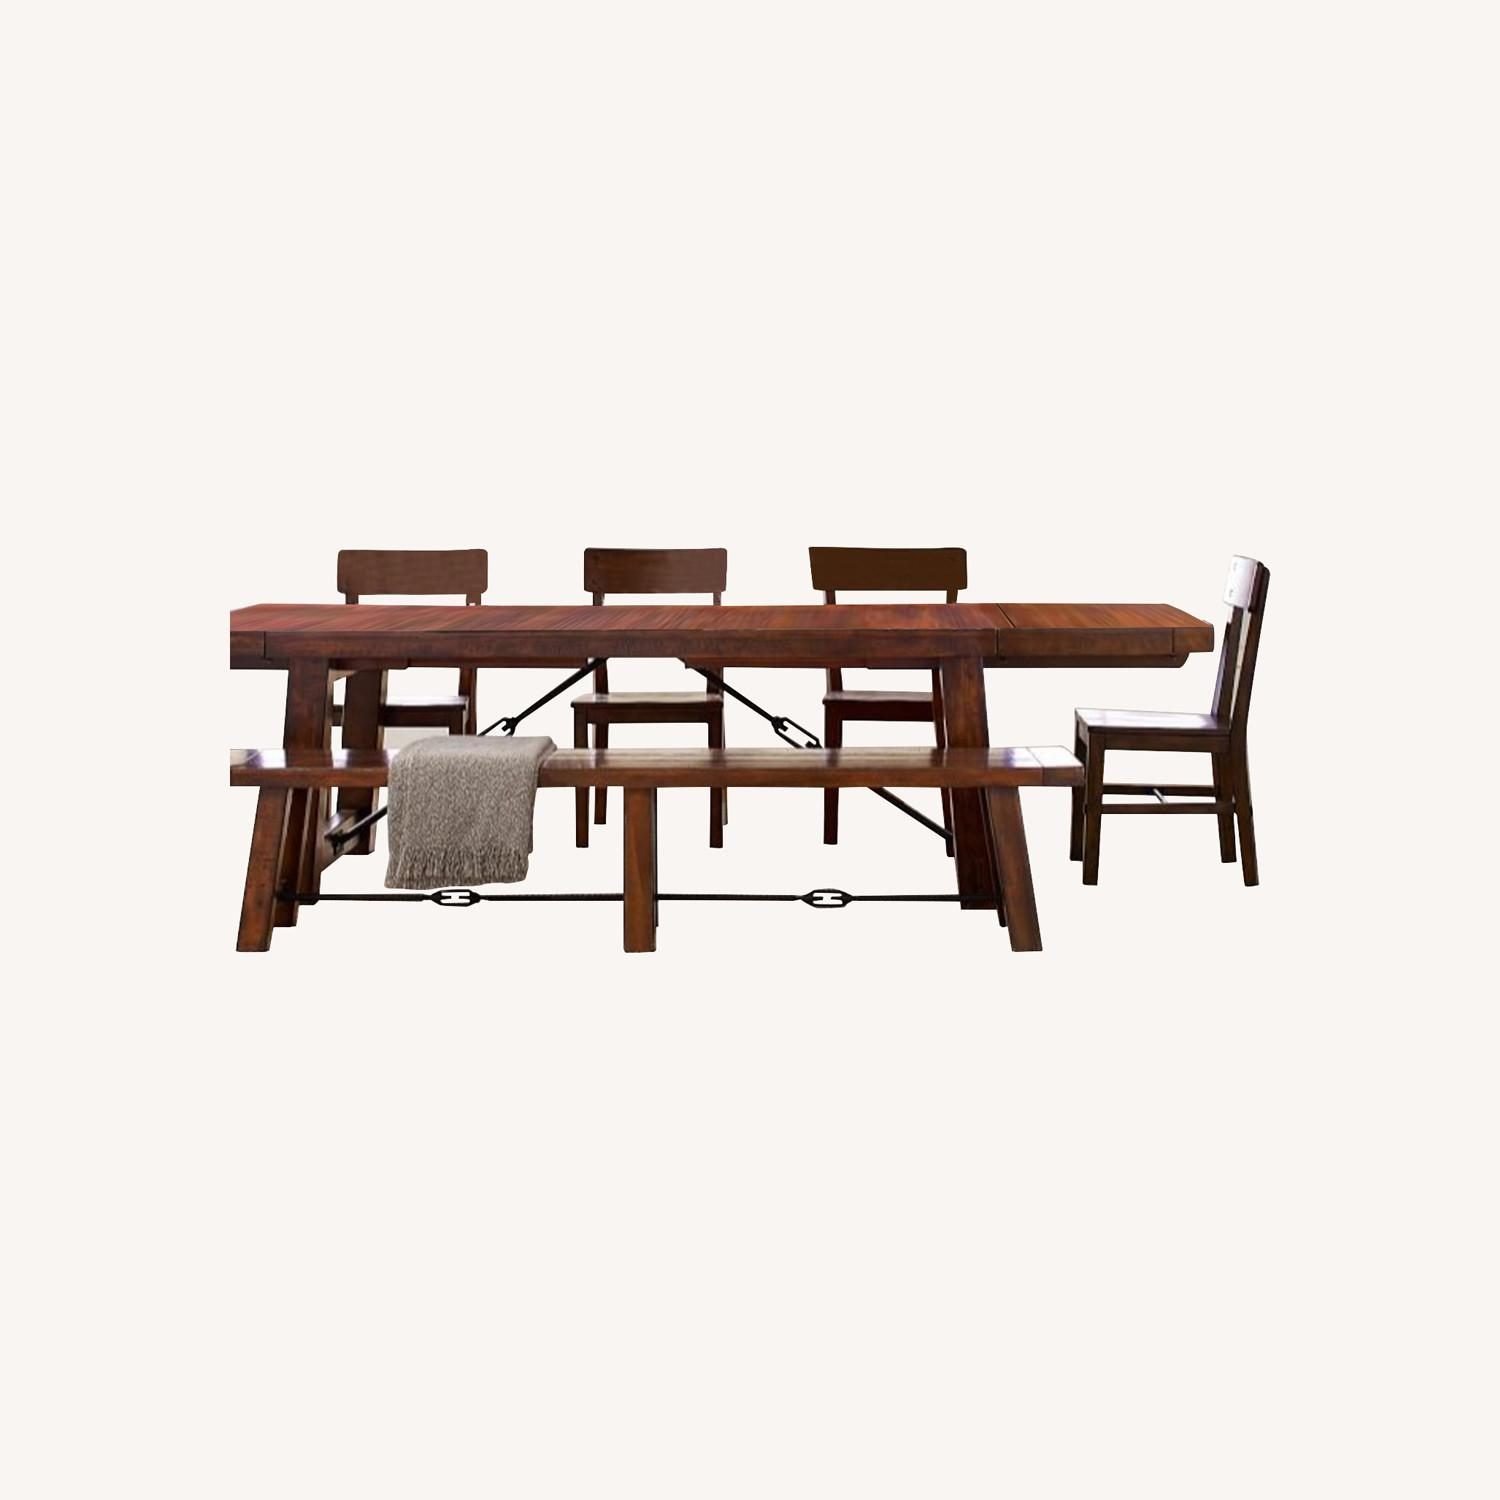 Pottery Barn Distressed Wood Rustic Table and Benches - image-0